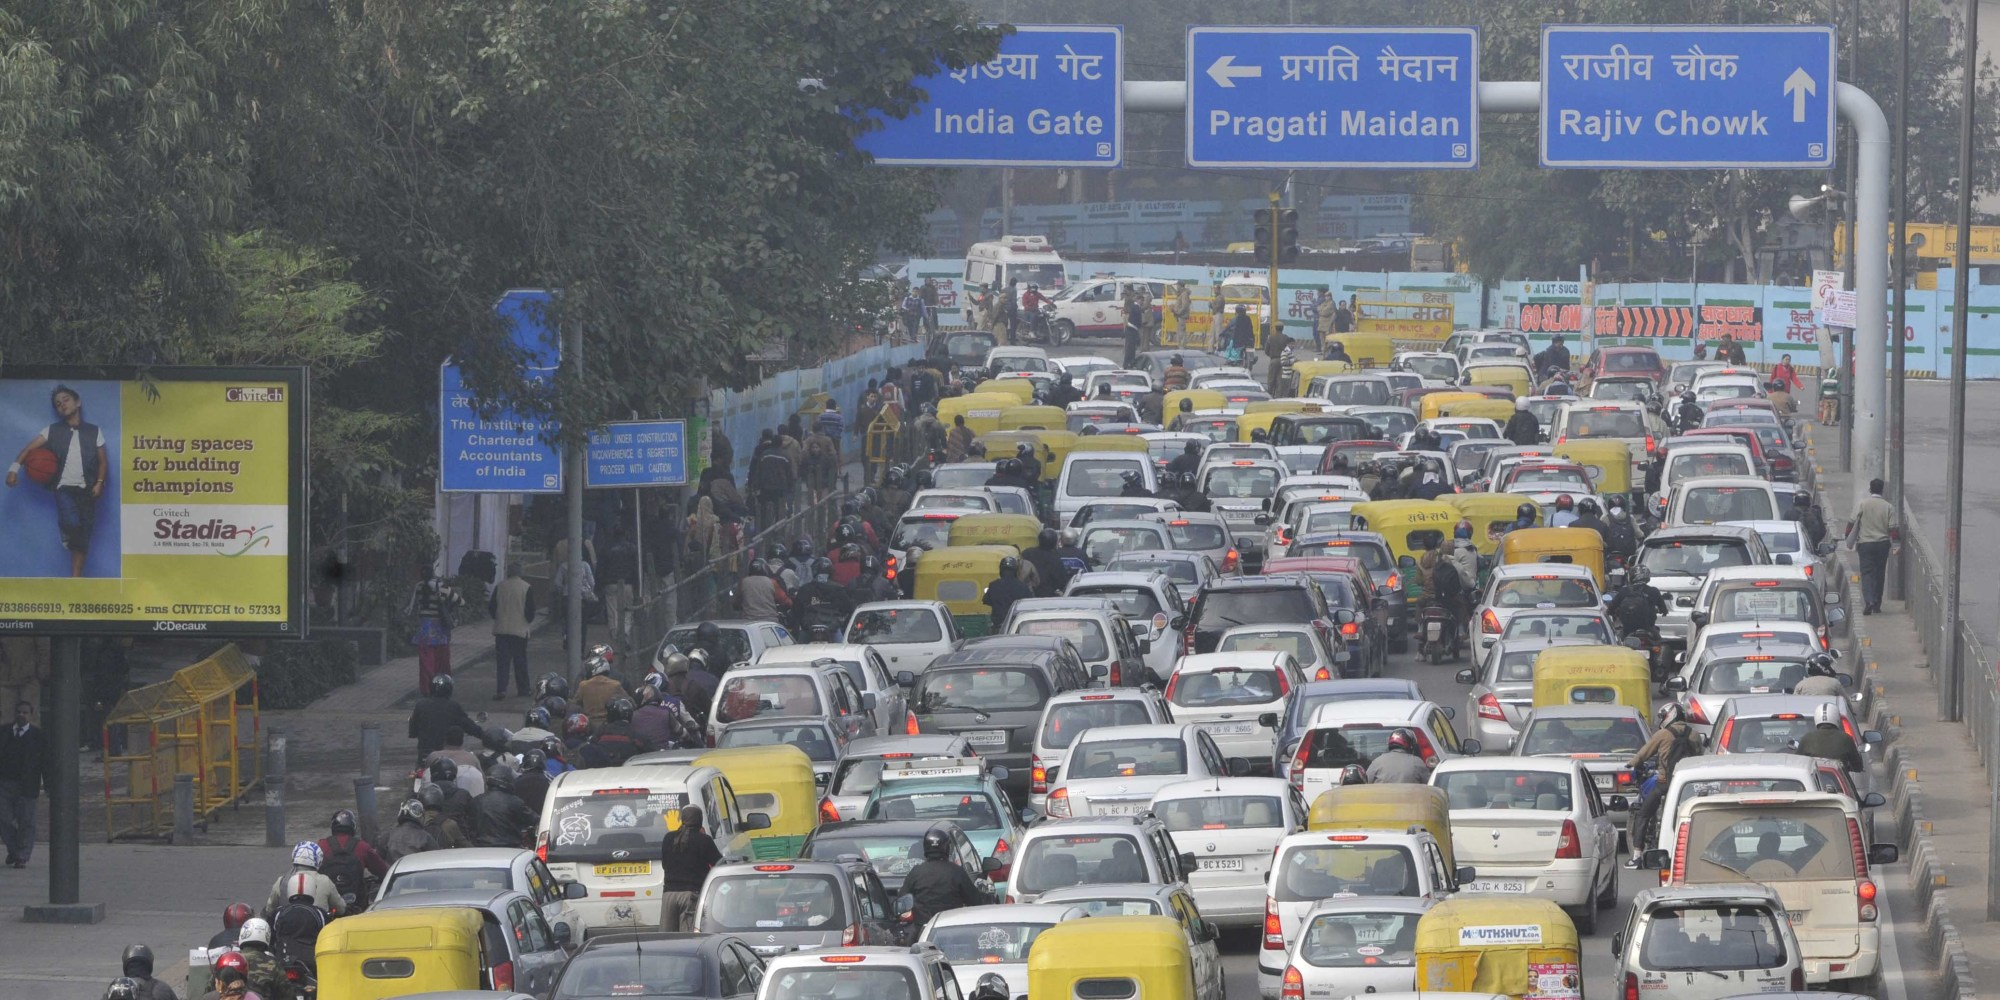 Traffic Jams Due To Republic Day Parade